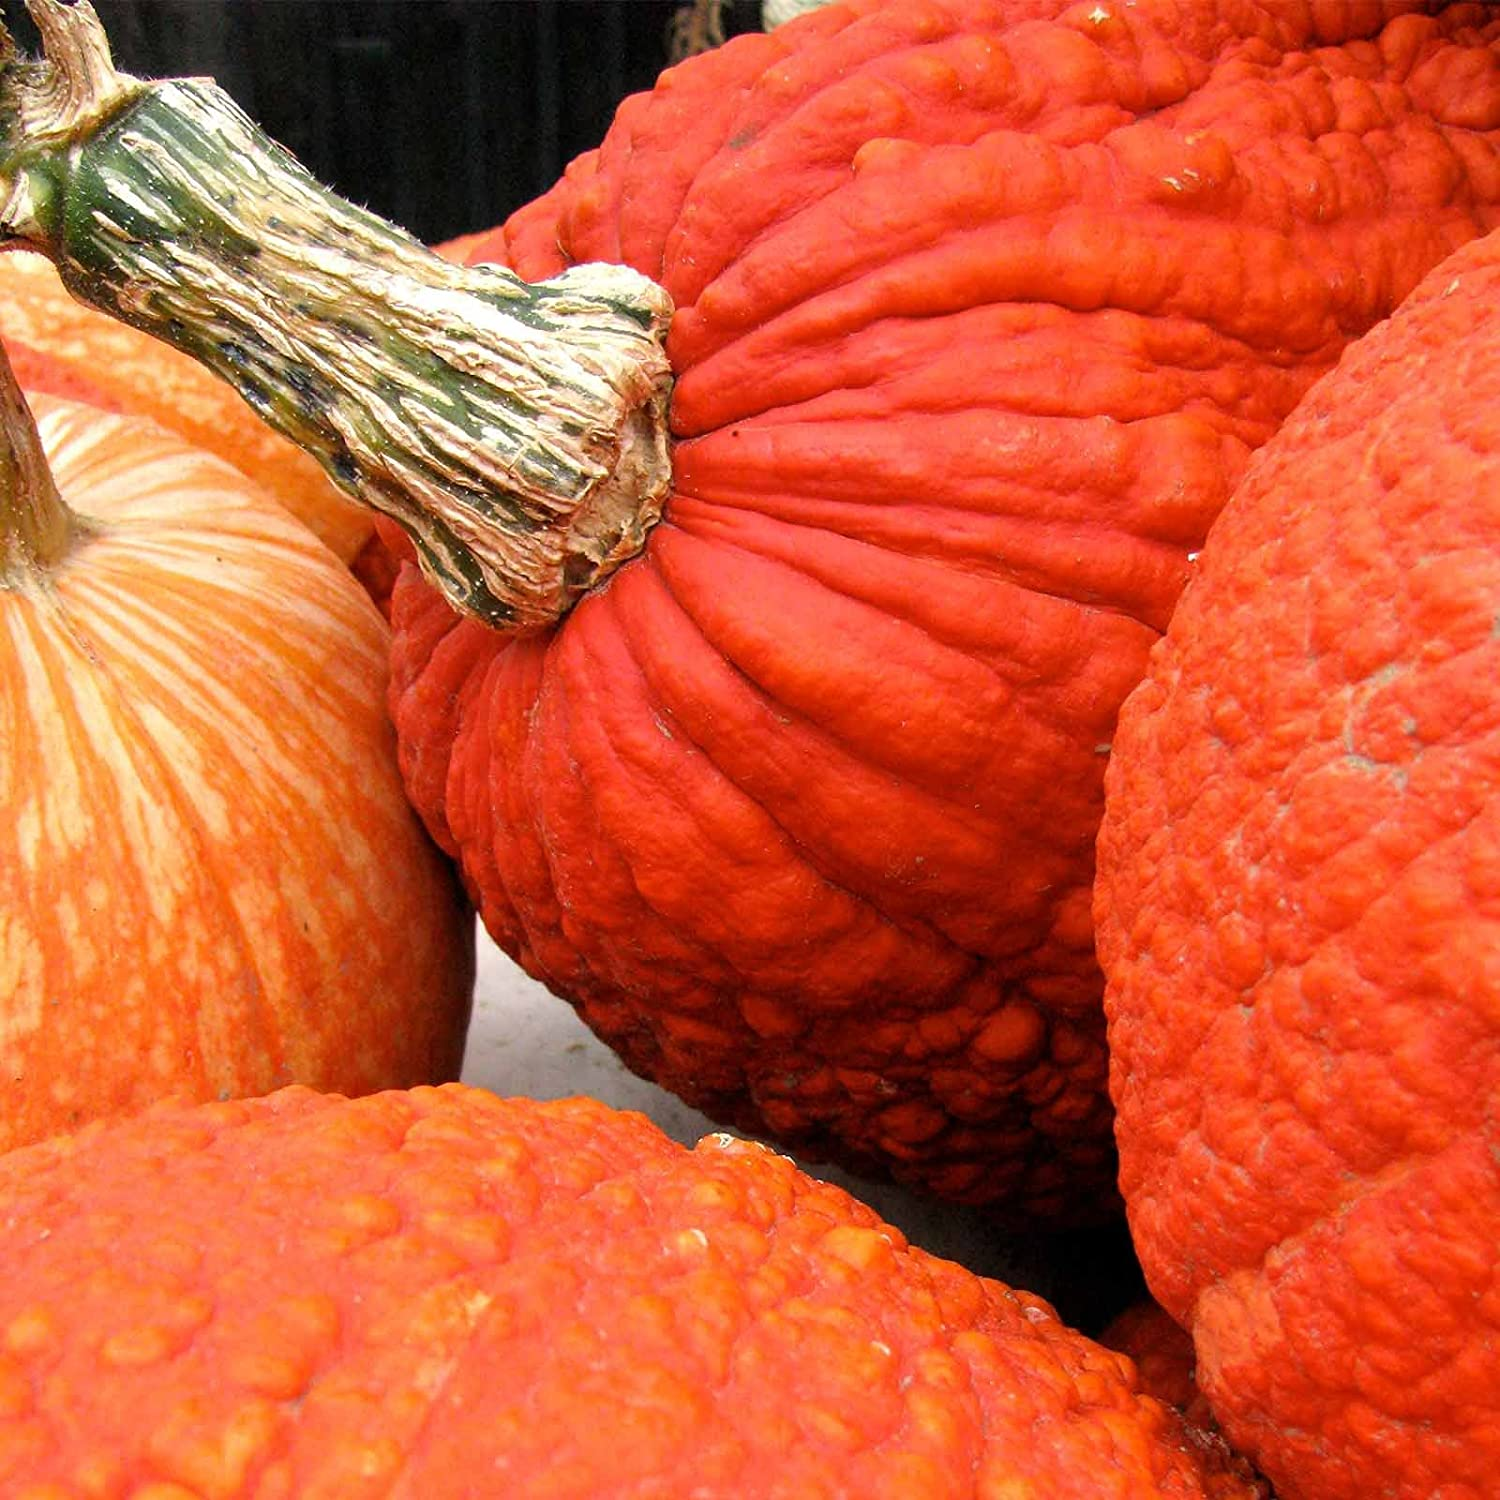 Pumpkin Garden Seeds - Red Warty Thing Variety - 4 oz (Treated) Seed - Non-GMO, Heirloom Decorative and Edible Pumpkins - Bright Orange